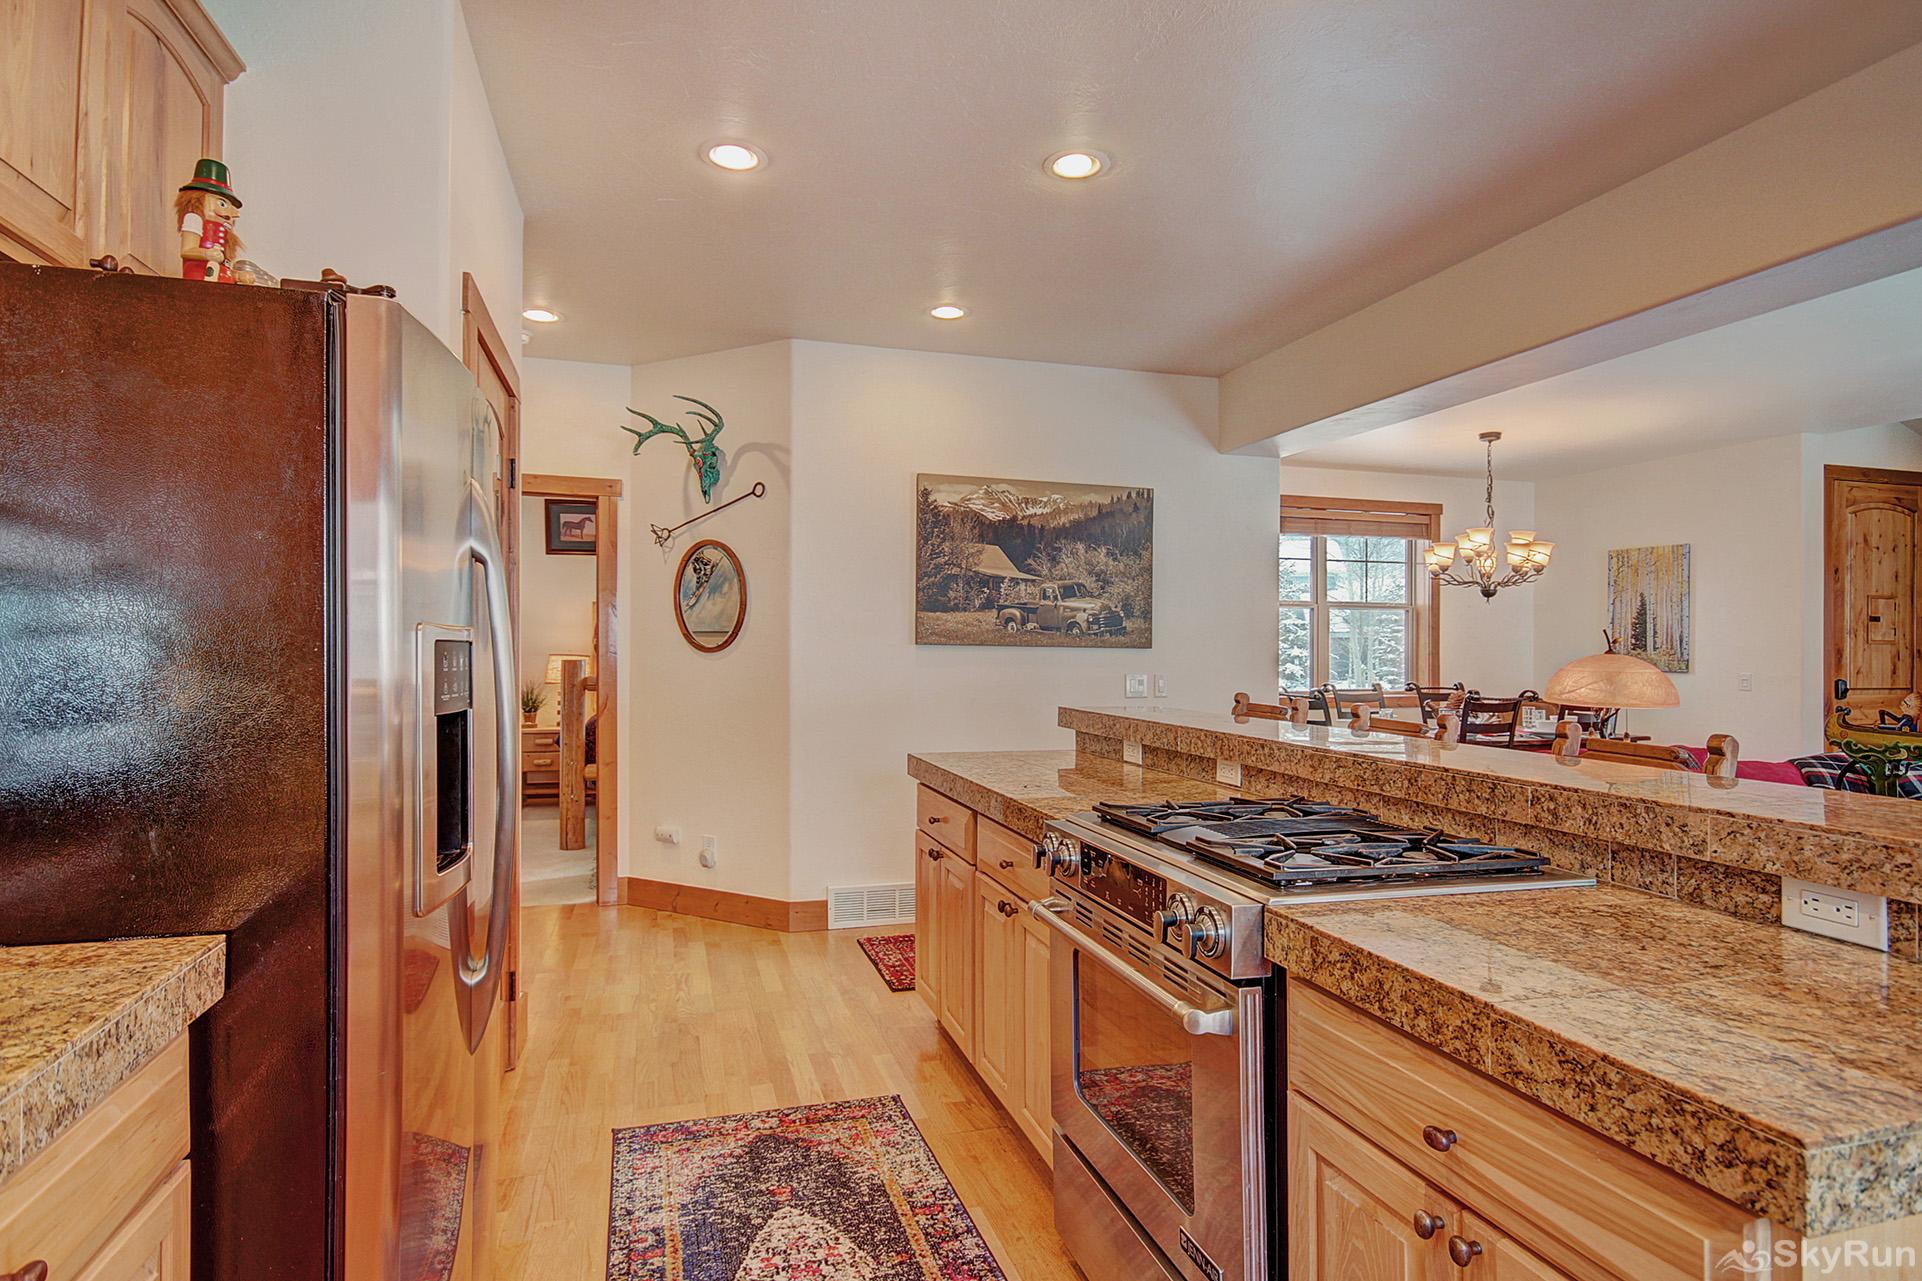 Summit Vista Retreat Fully equipped kitchen updated with stainless steel appliances